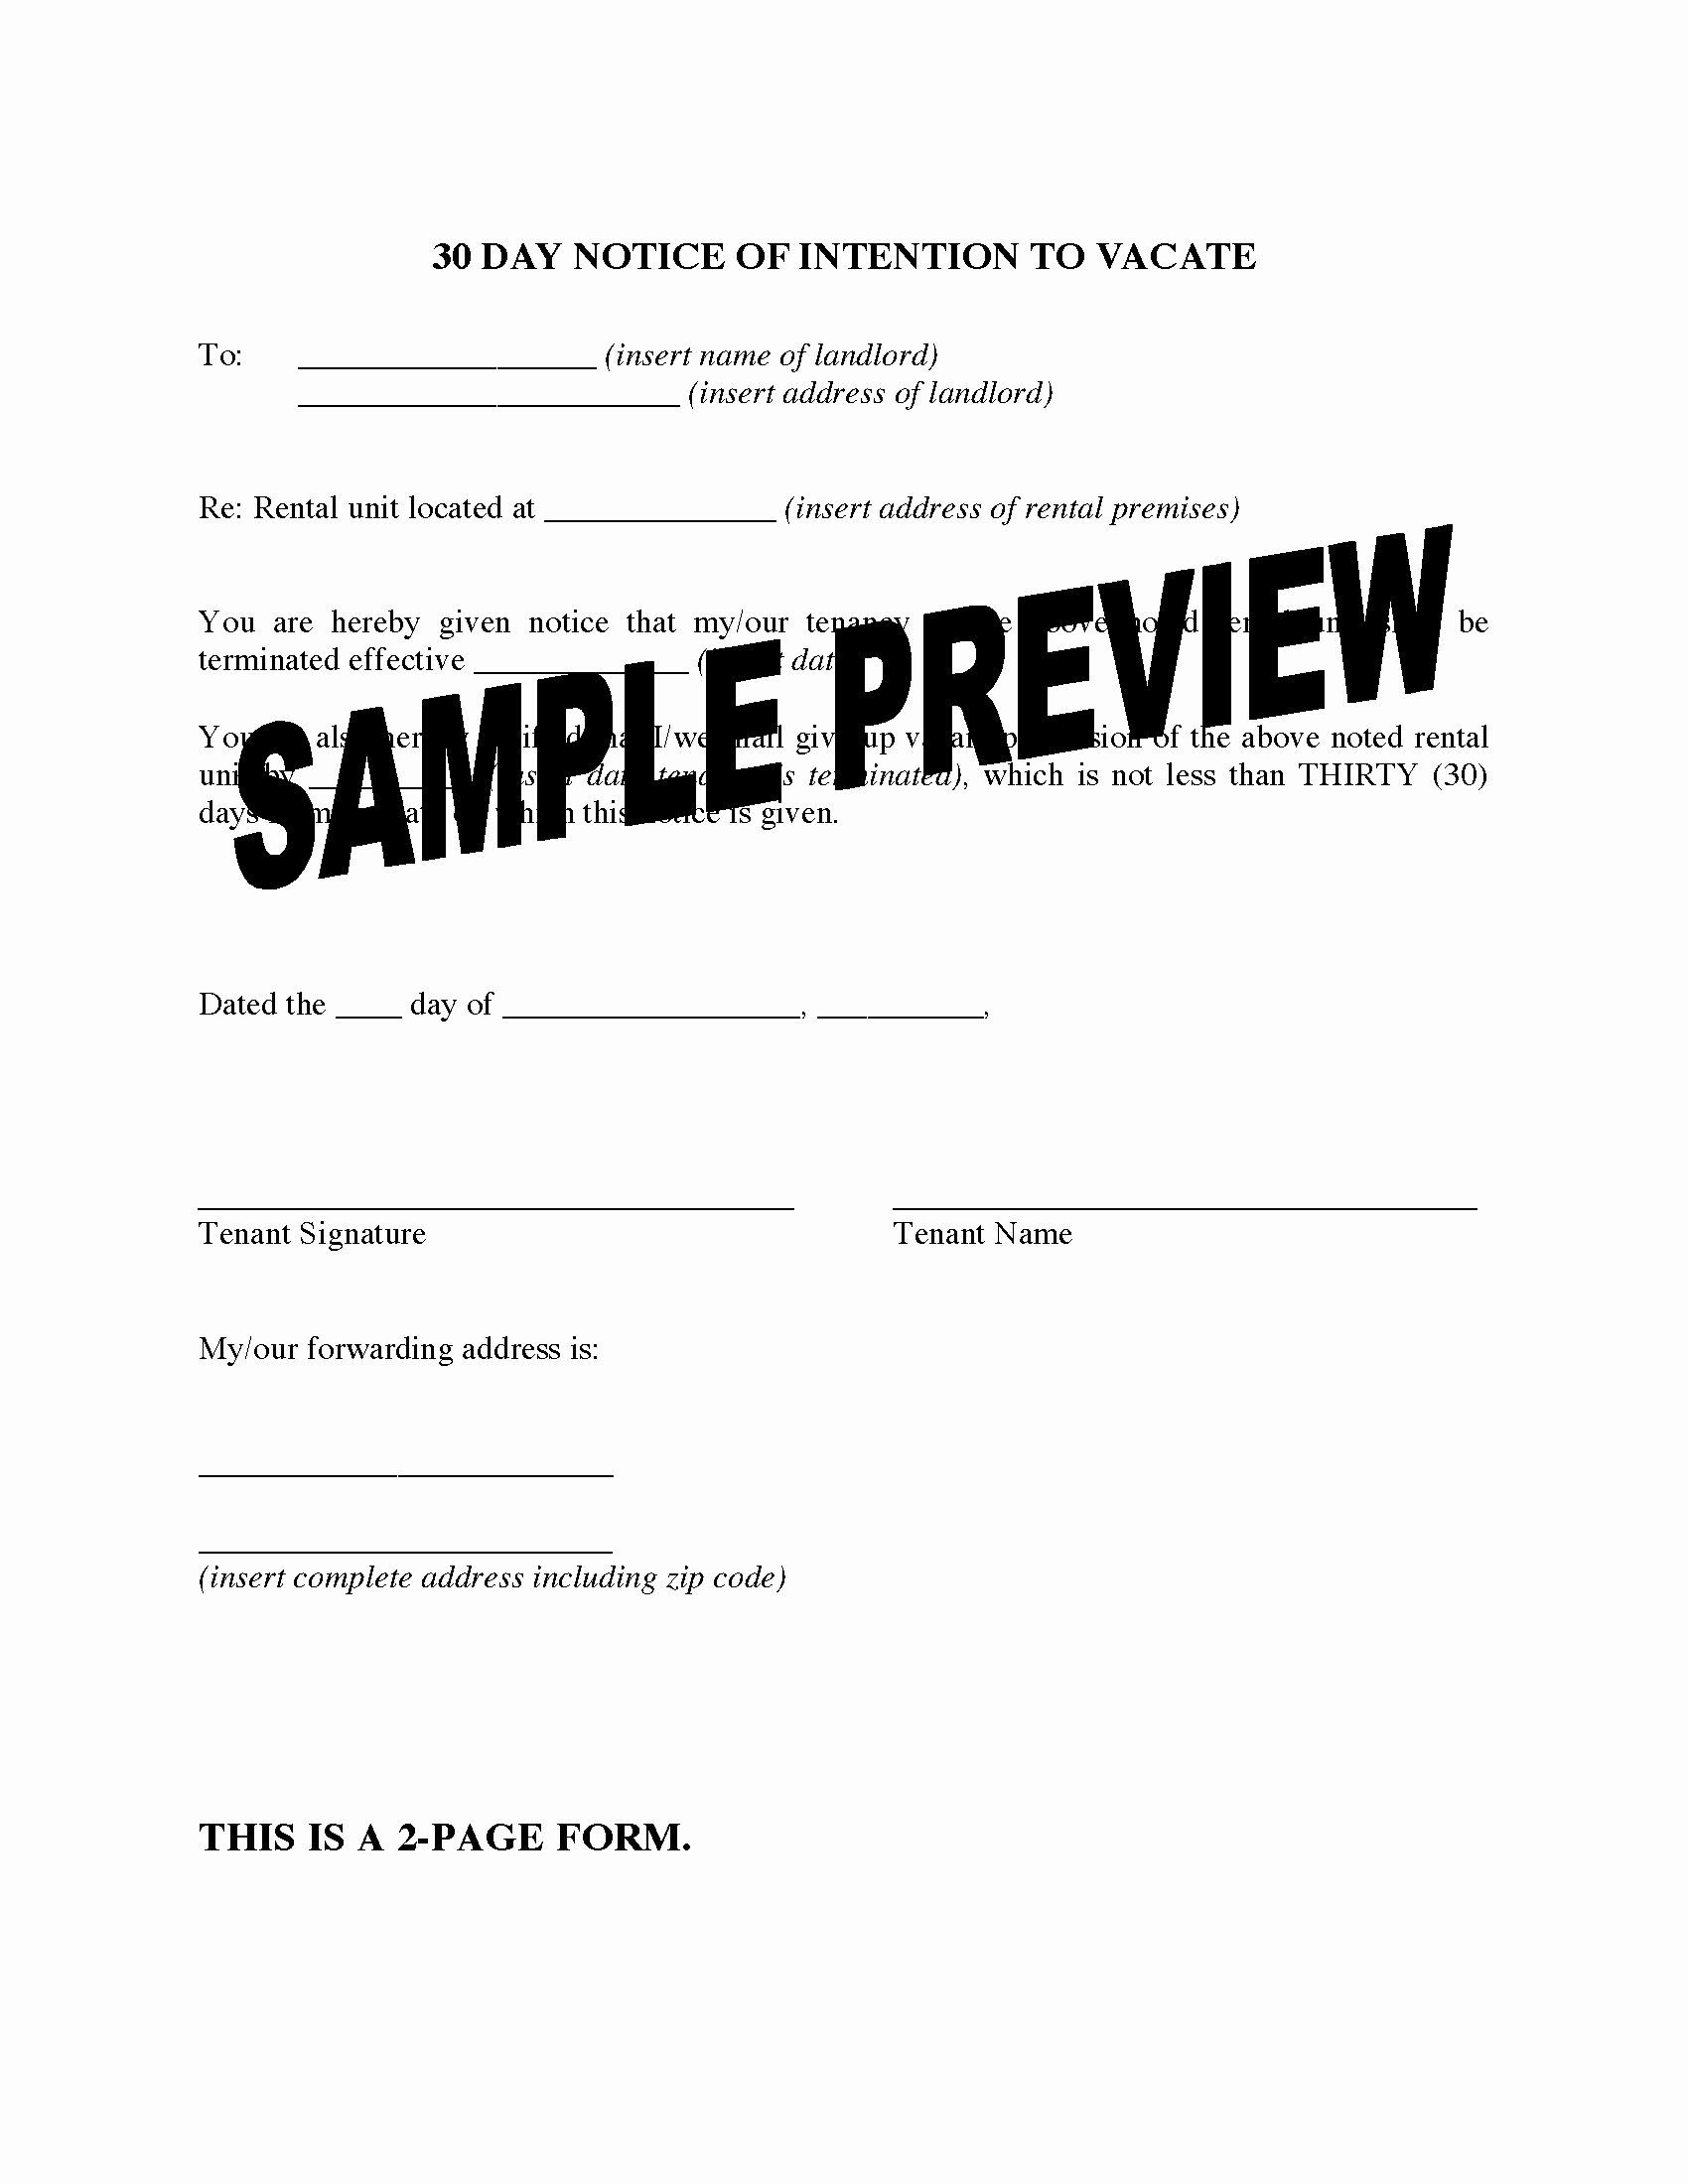 Landlord Notice To Vacate Fresh Texas 30 Day Notice To Landlord Of Intention To Vacate Being A Landlord Gift Certificate Template Word Budget Planner Template Notice to quit form pa